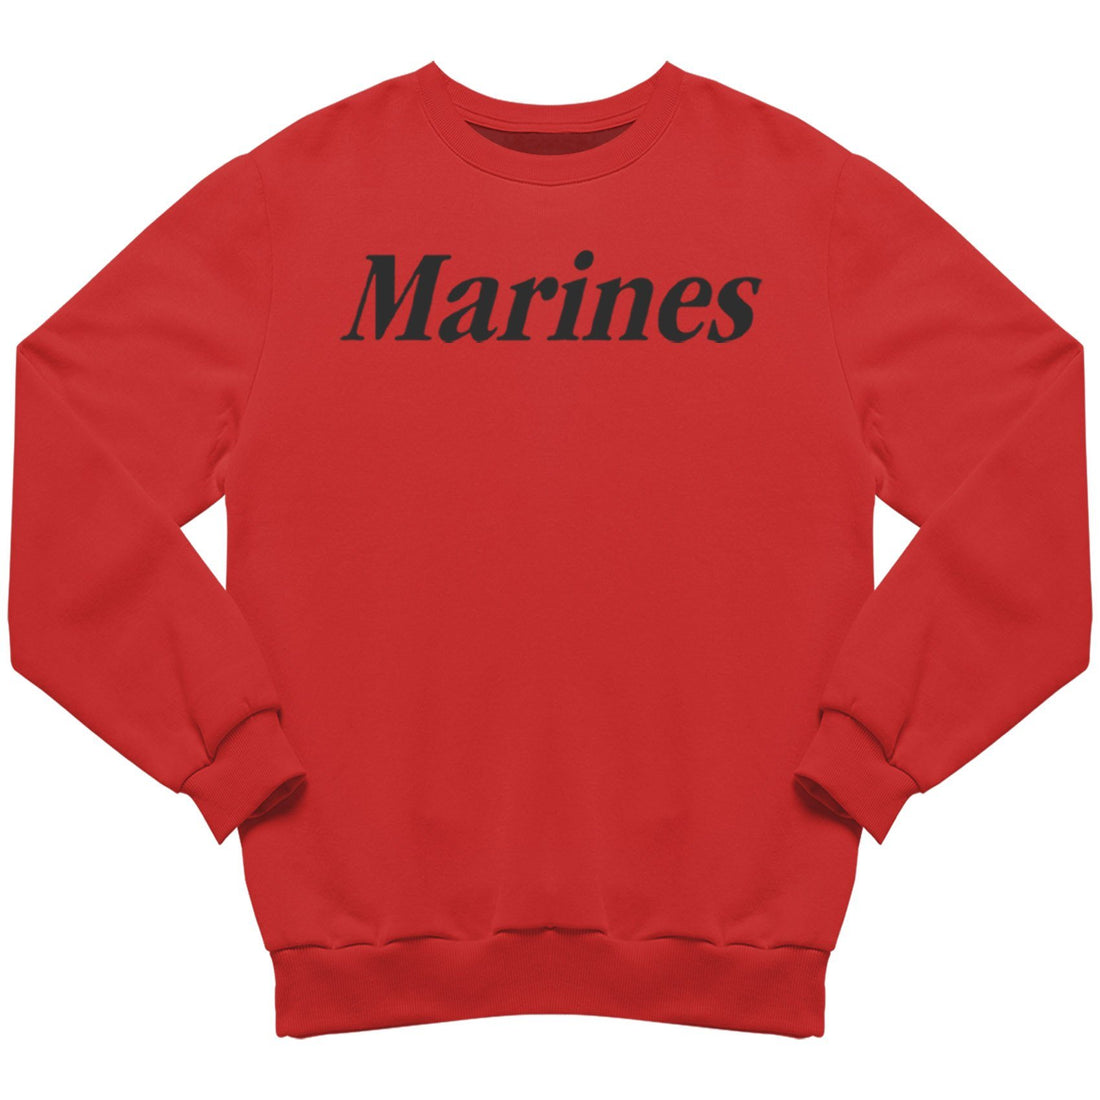 Marines Limited Edition Sweatshirt - Marine Corps Direct